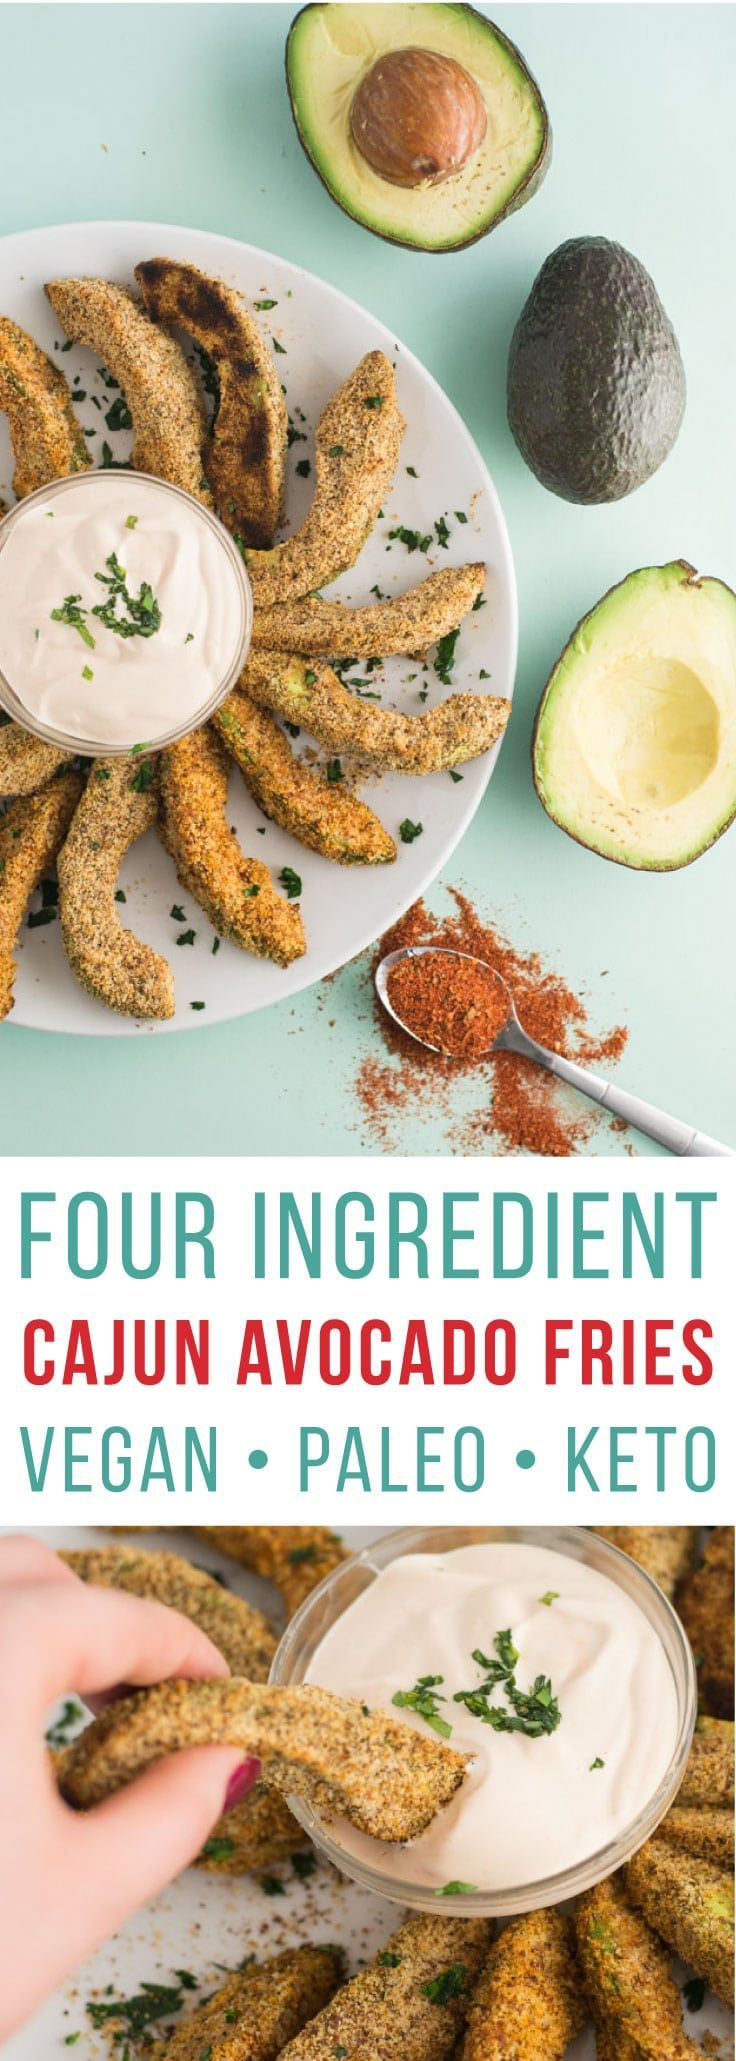 Fries -- These avocado fries only require four ingredients and can be baked to perfection in 15 minutes! Almond milk, almond meal, cajun seasoning, and avocados make this snack recipe totally vegan, paleo, gluten-free and keto! | mindfulavocado